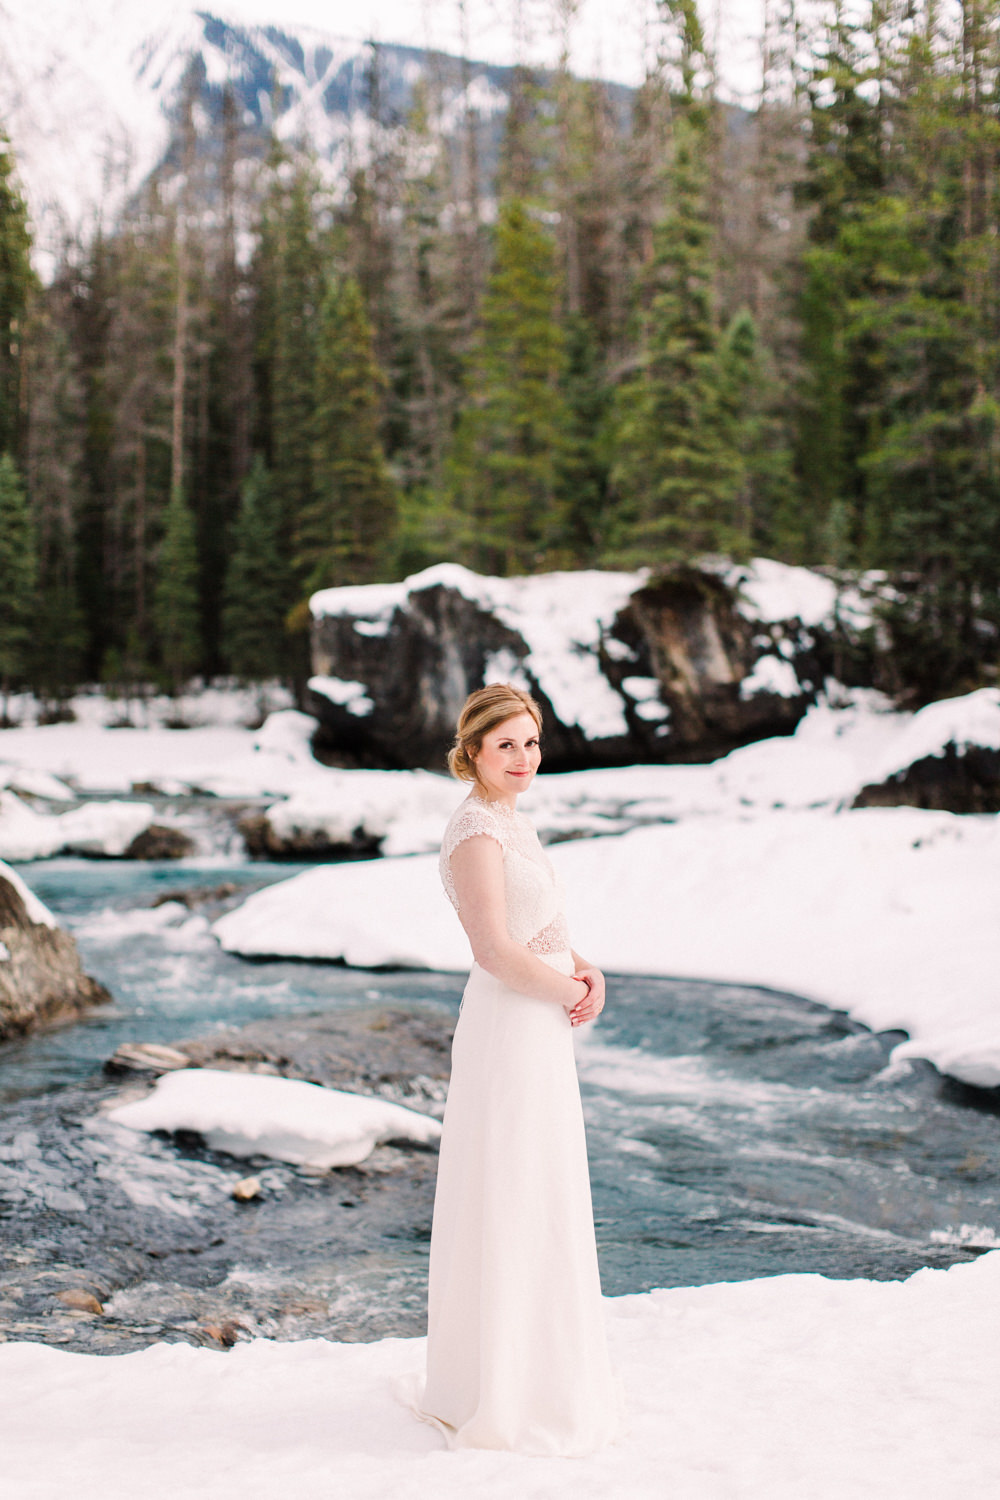 Matt-and-Jennas-Emerald-Lake-winter-wedding-22.jpg